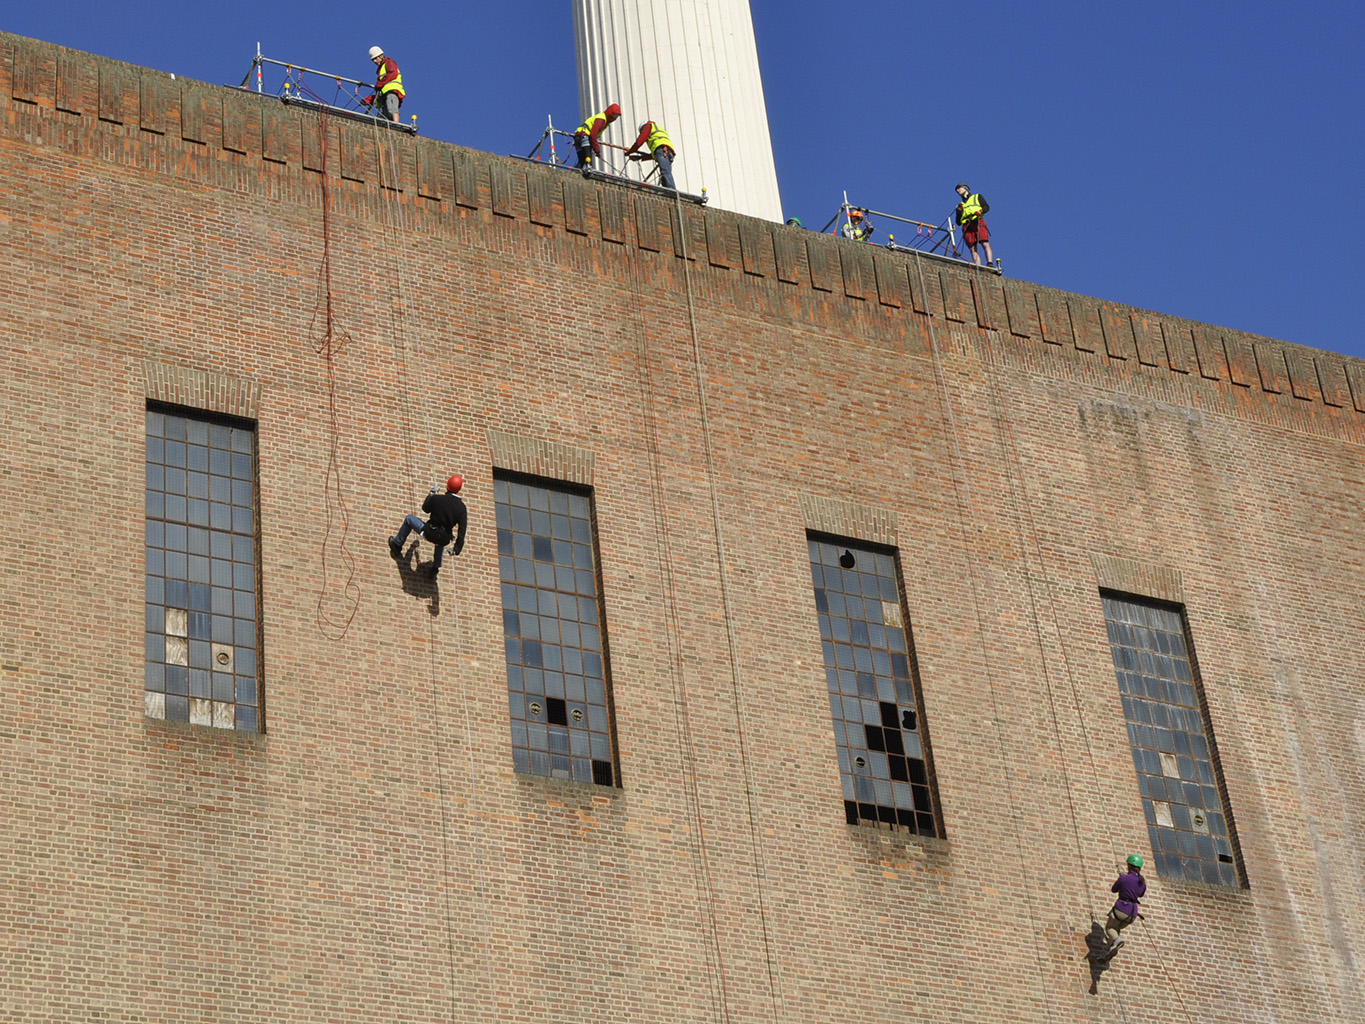 2013: Abseiling off Battersea Power Station to raise money for Cancer Research